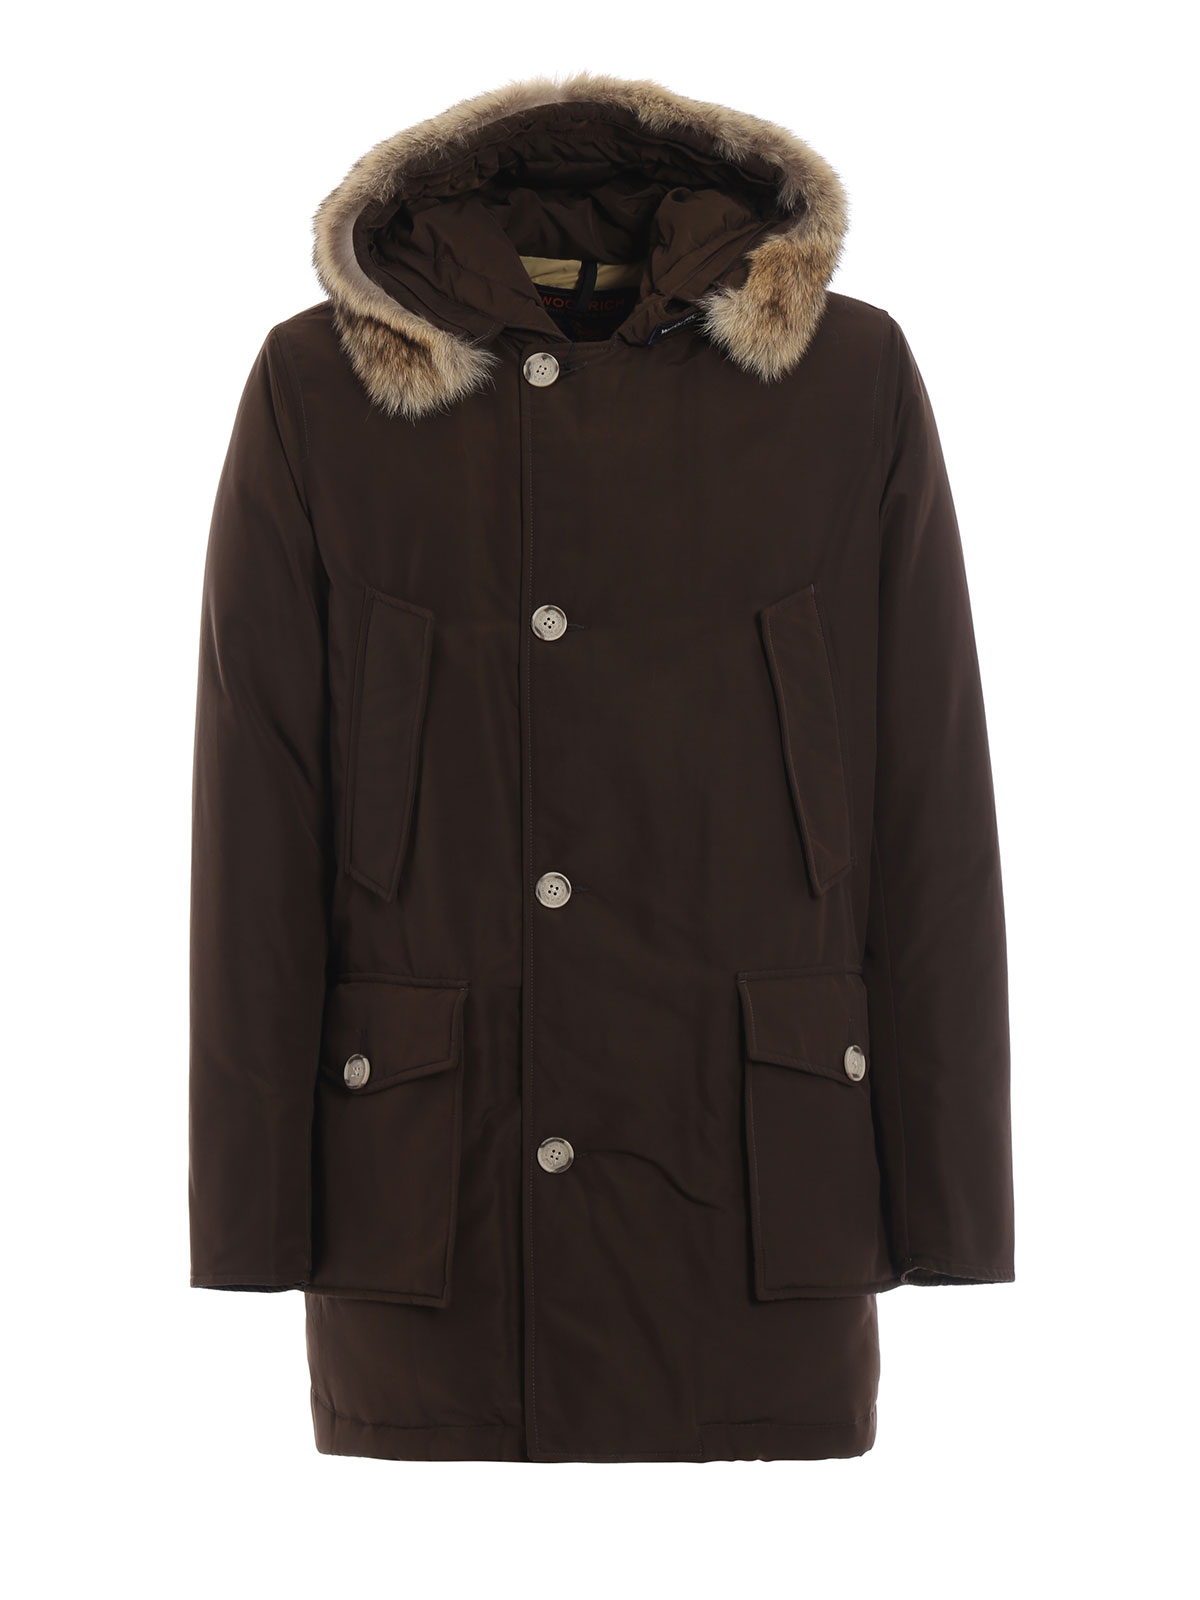 WOOLRICH ARCTIC PARKA DARK BROWN PADDED COAT